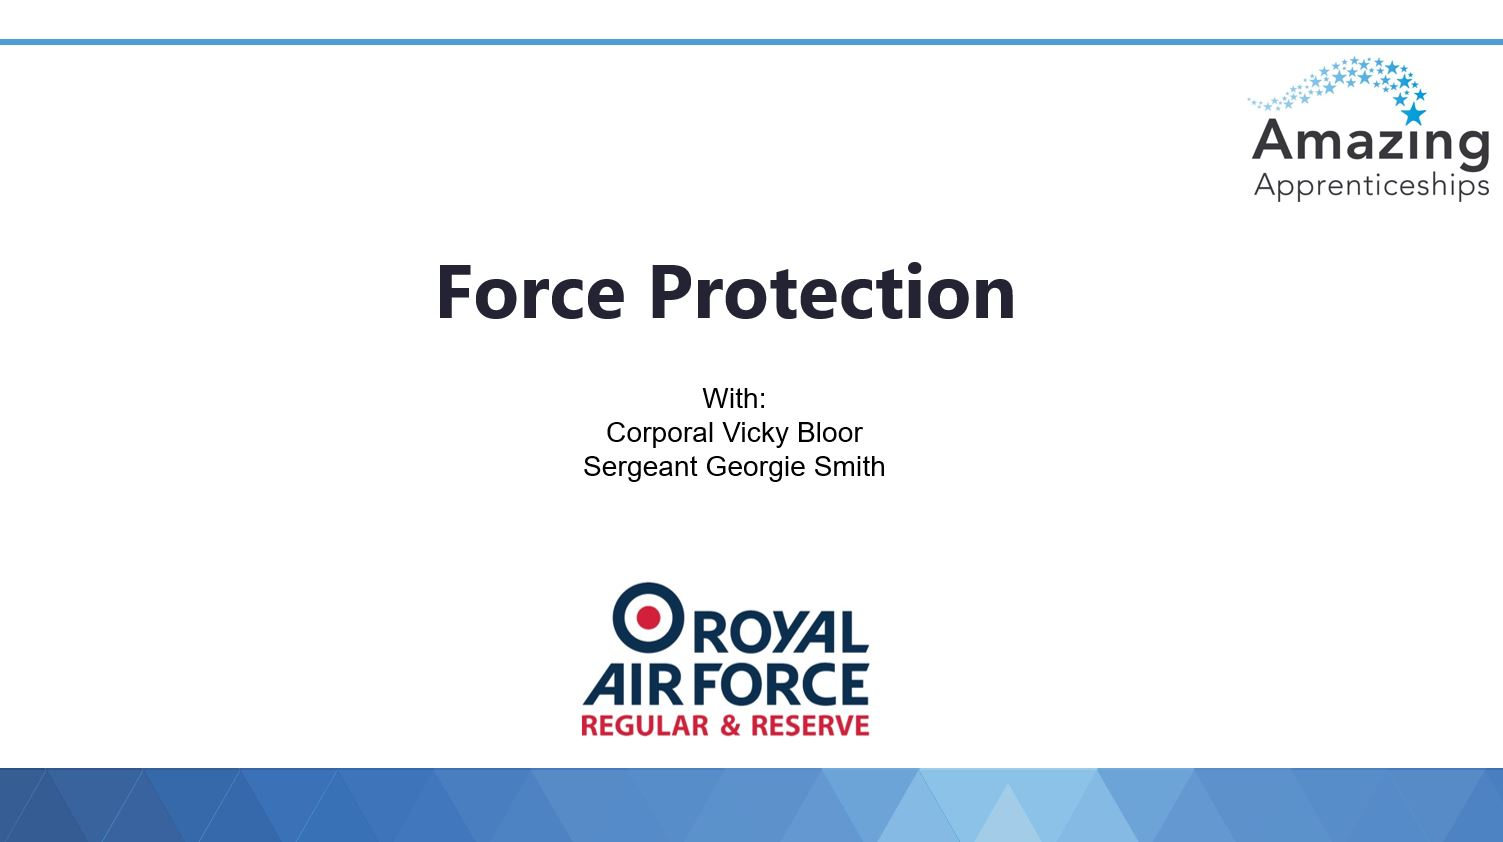 RAF No room for clichés webinar slides – Force Protection